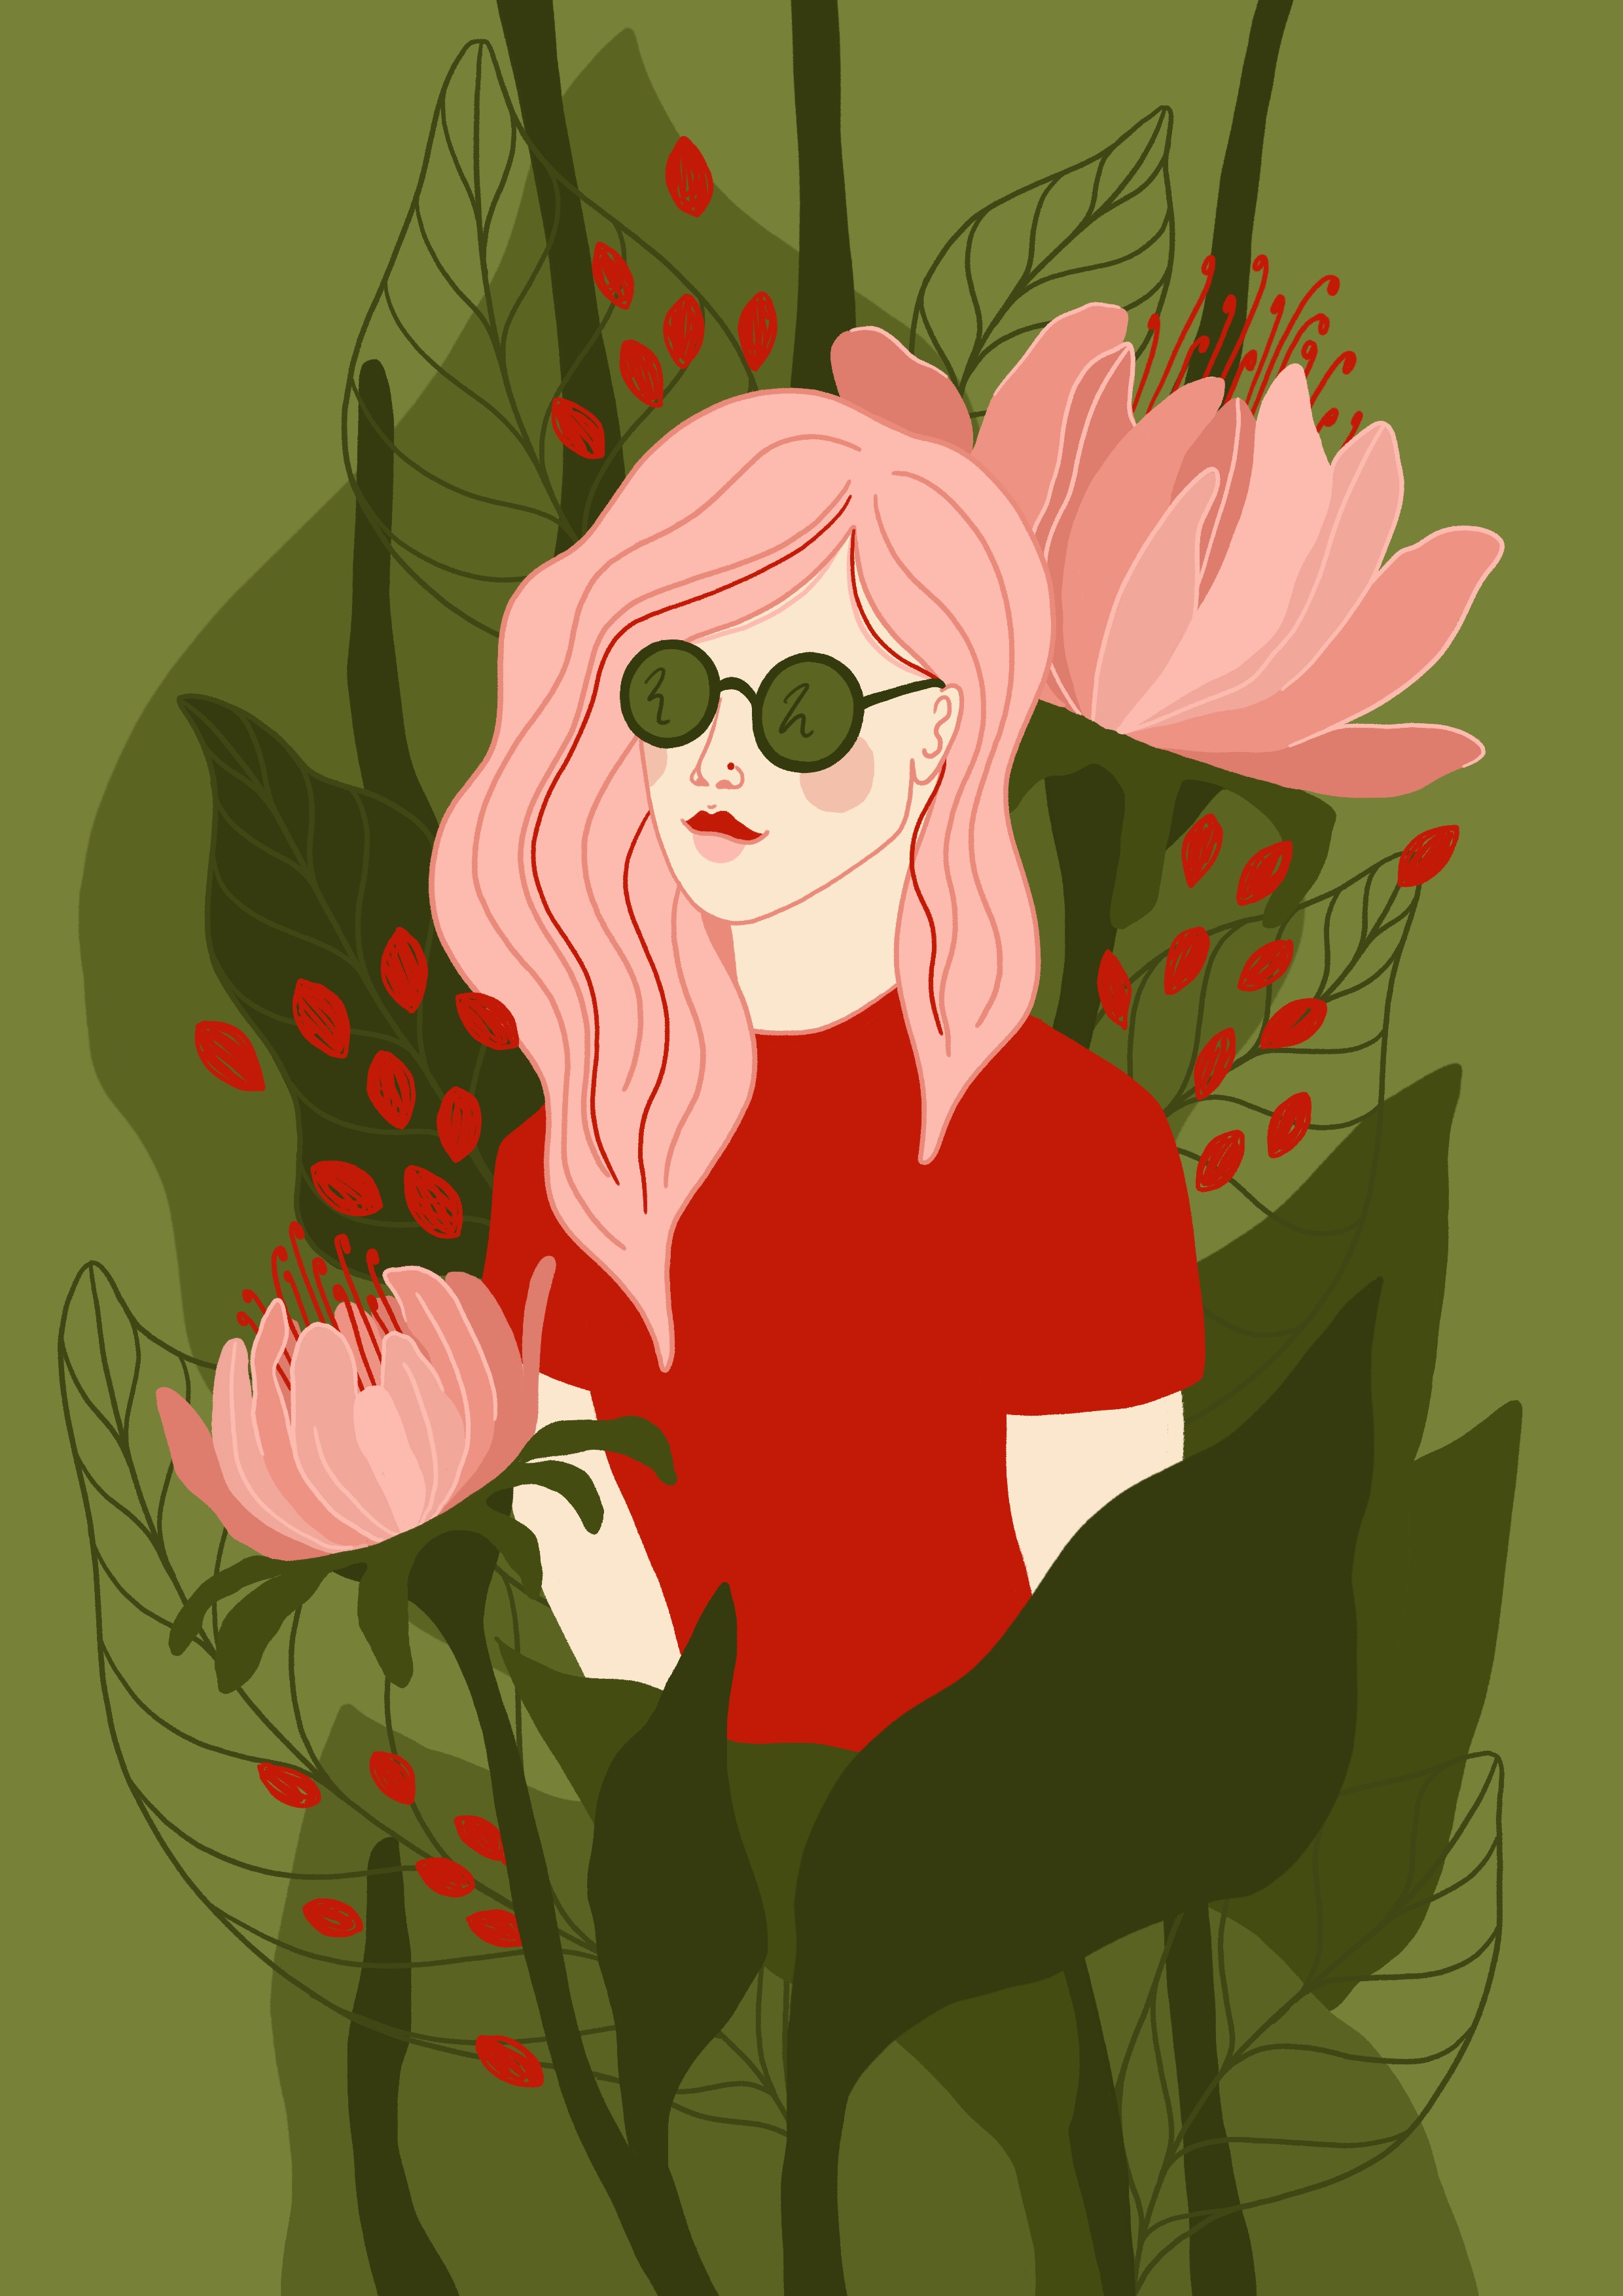 Girl With Sunnies.JPG